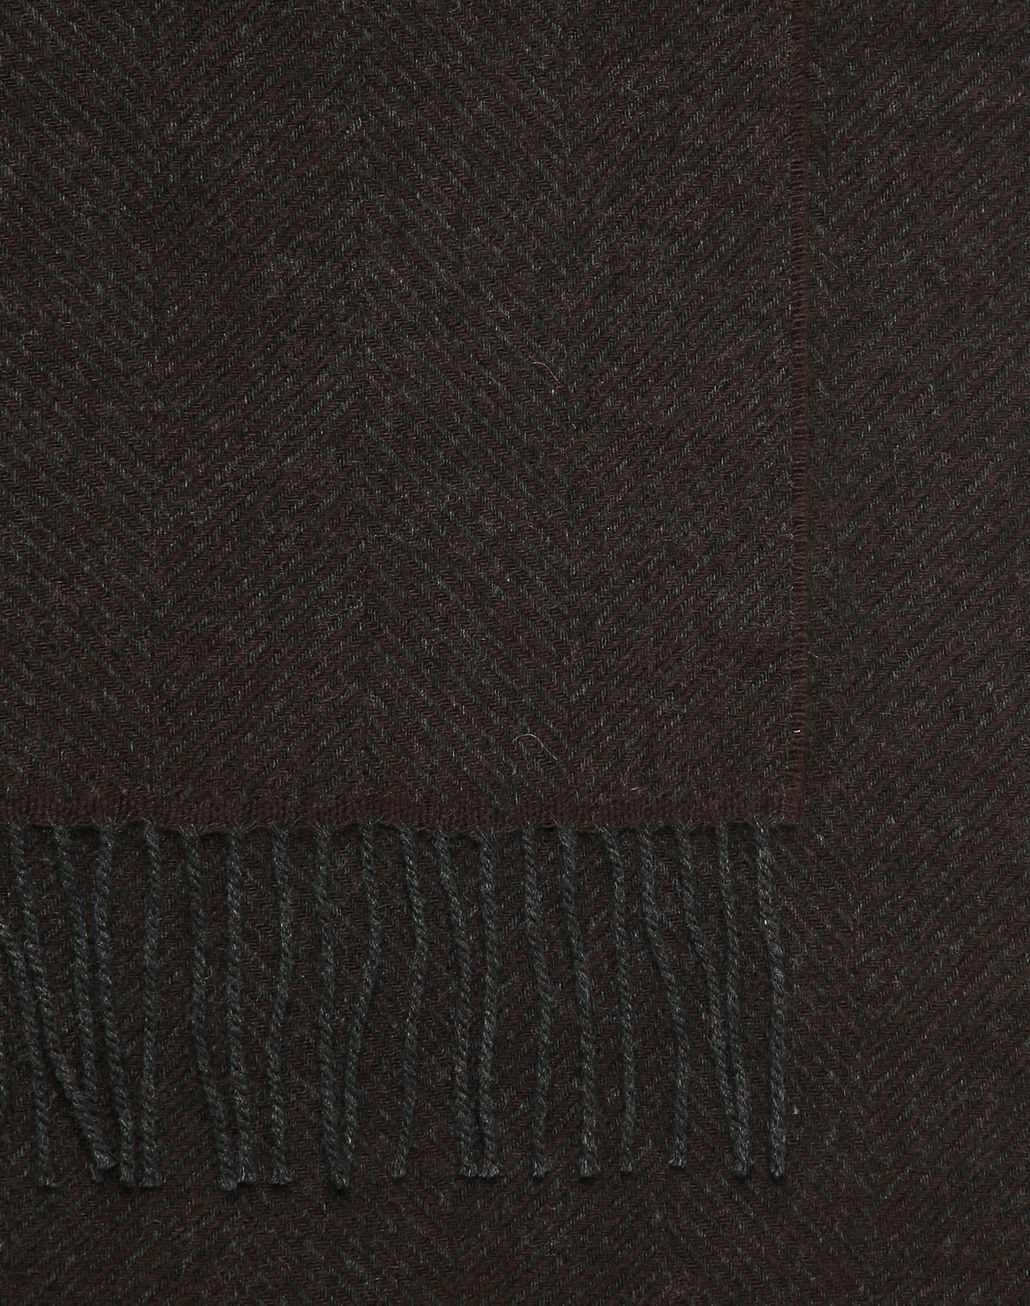 BRIONI Balck and Brown Herringbone Scarf Foulards & Scarves Man d